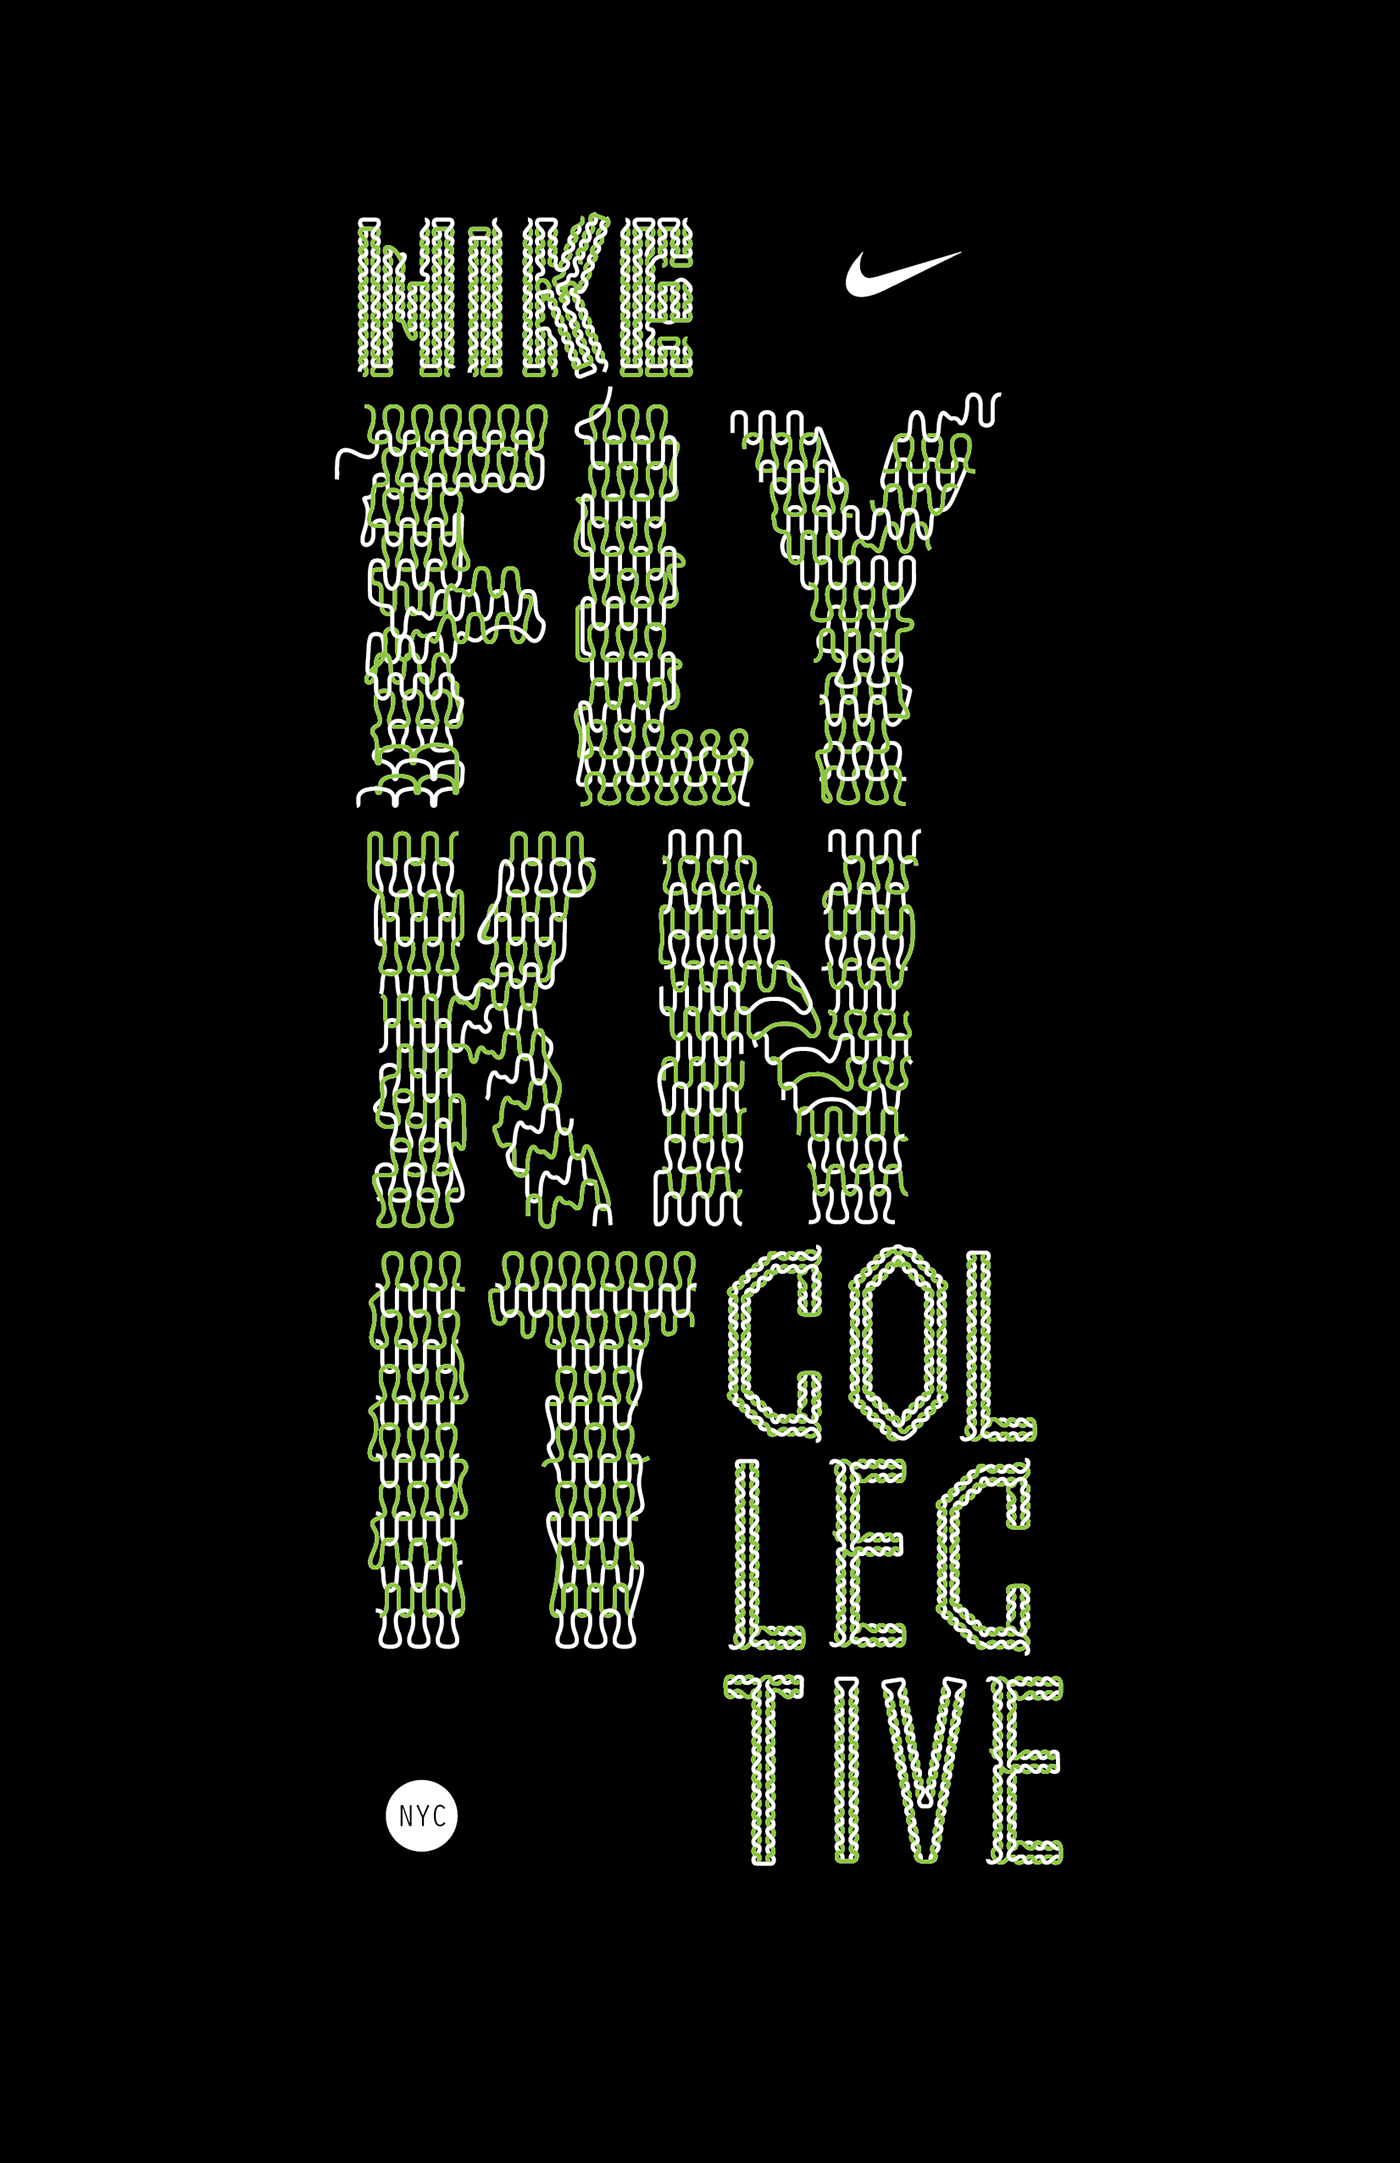 Nike flyknit collective t shirt 3 on behance for Nike flyknit t shirt